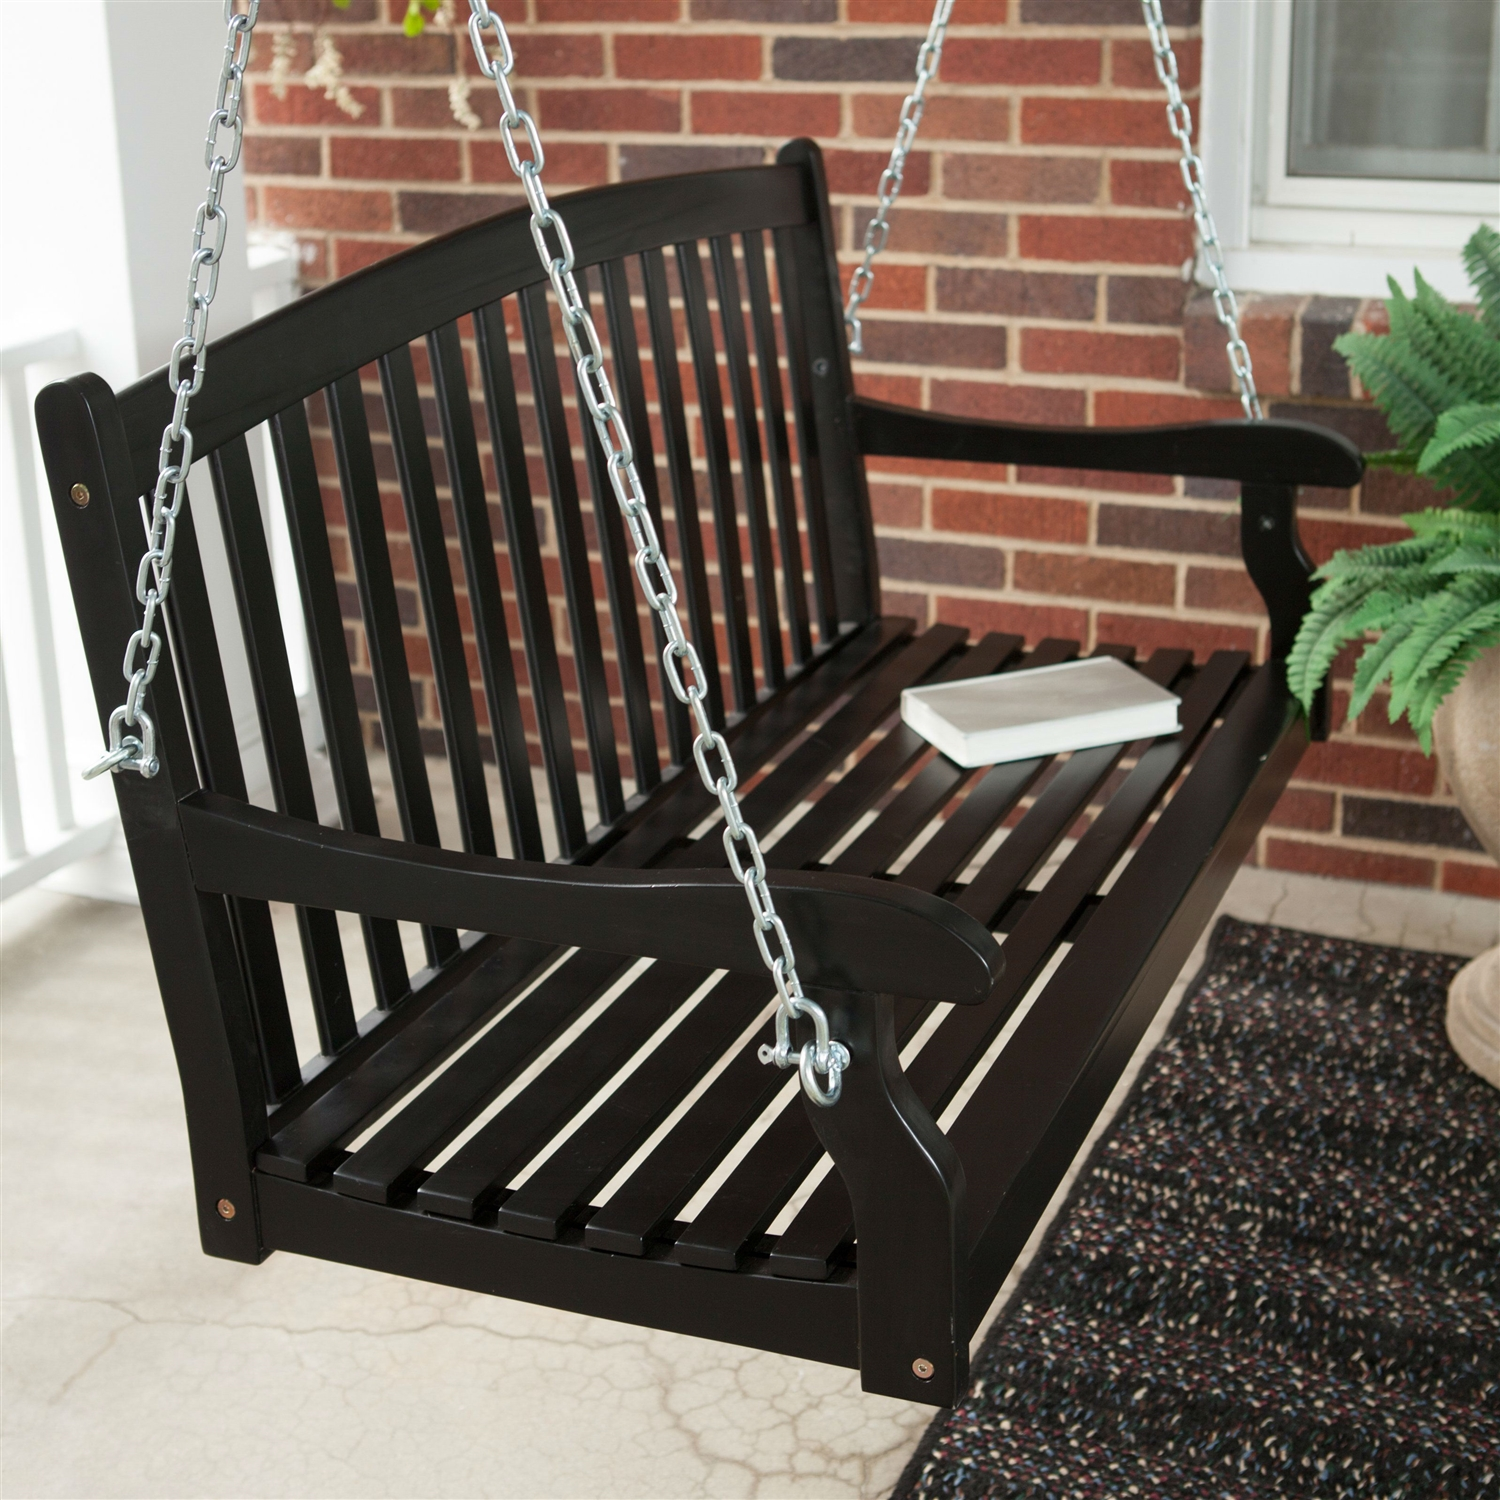 Outdoor Eco Friendly 4 Ft Wood Porch Swing In Black Fastfurnishings